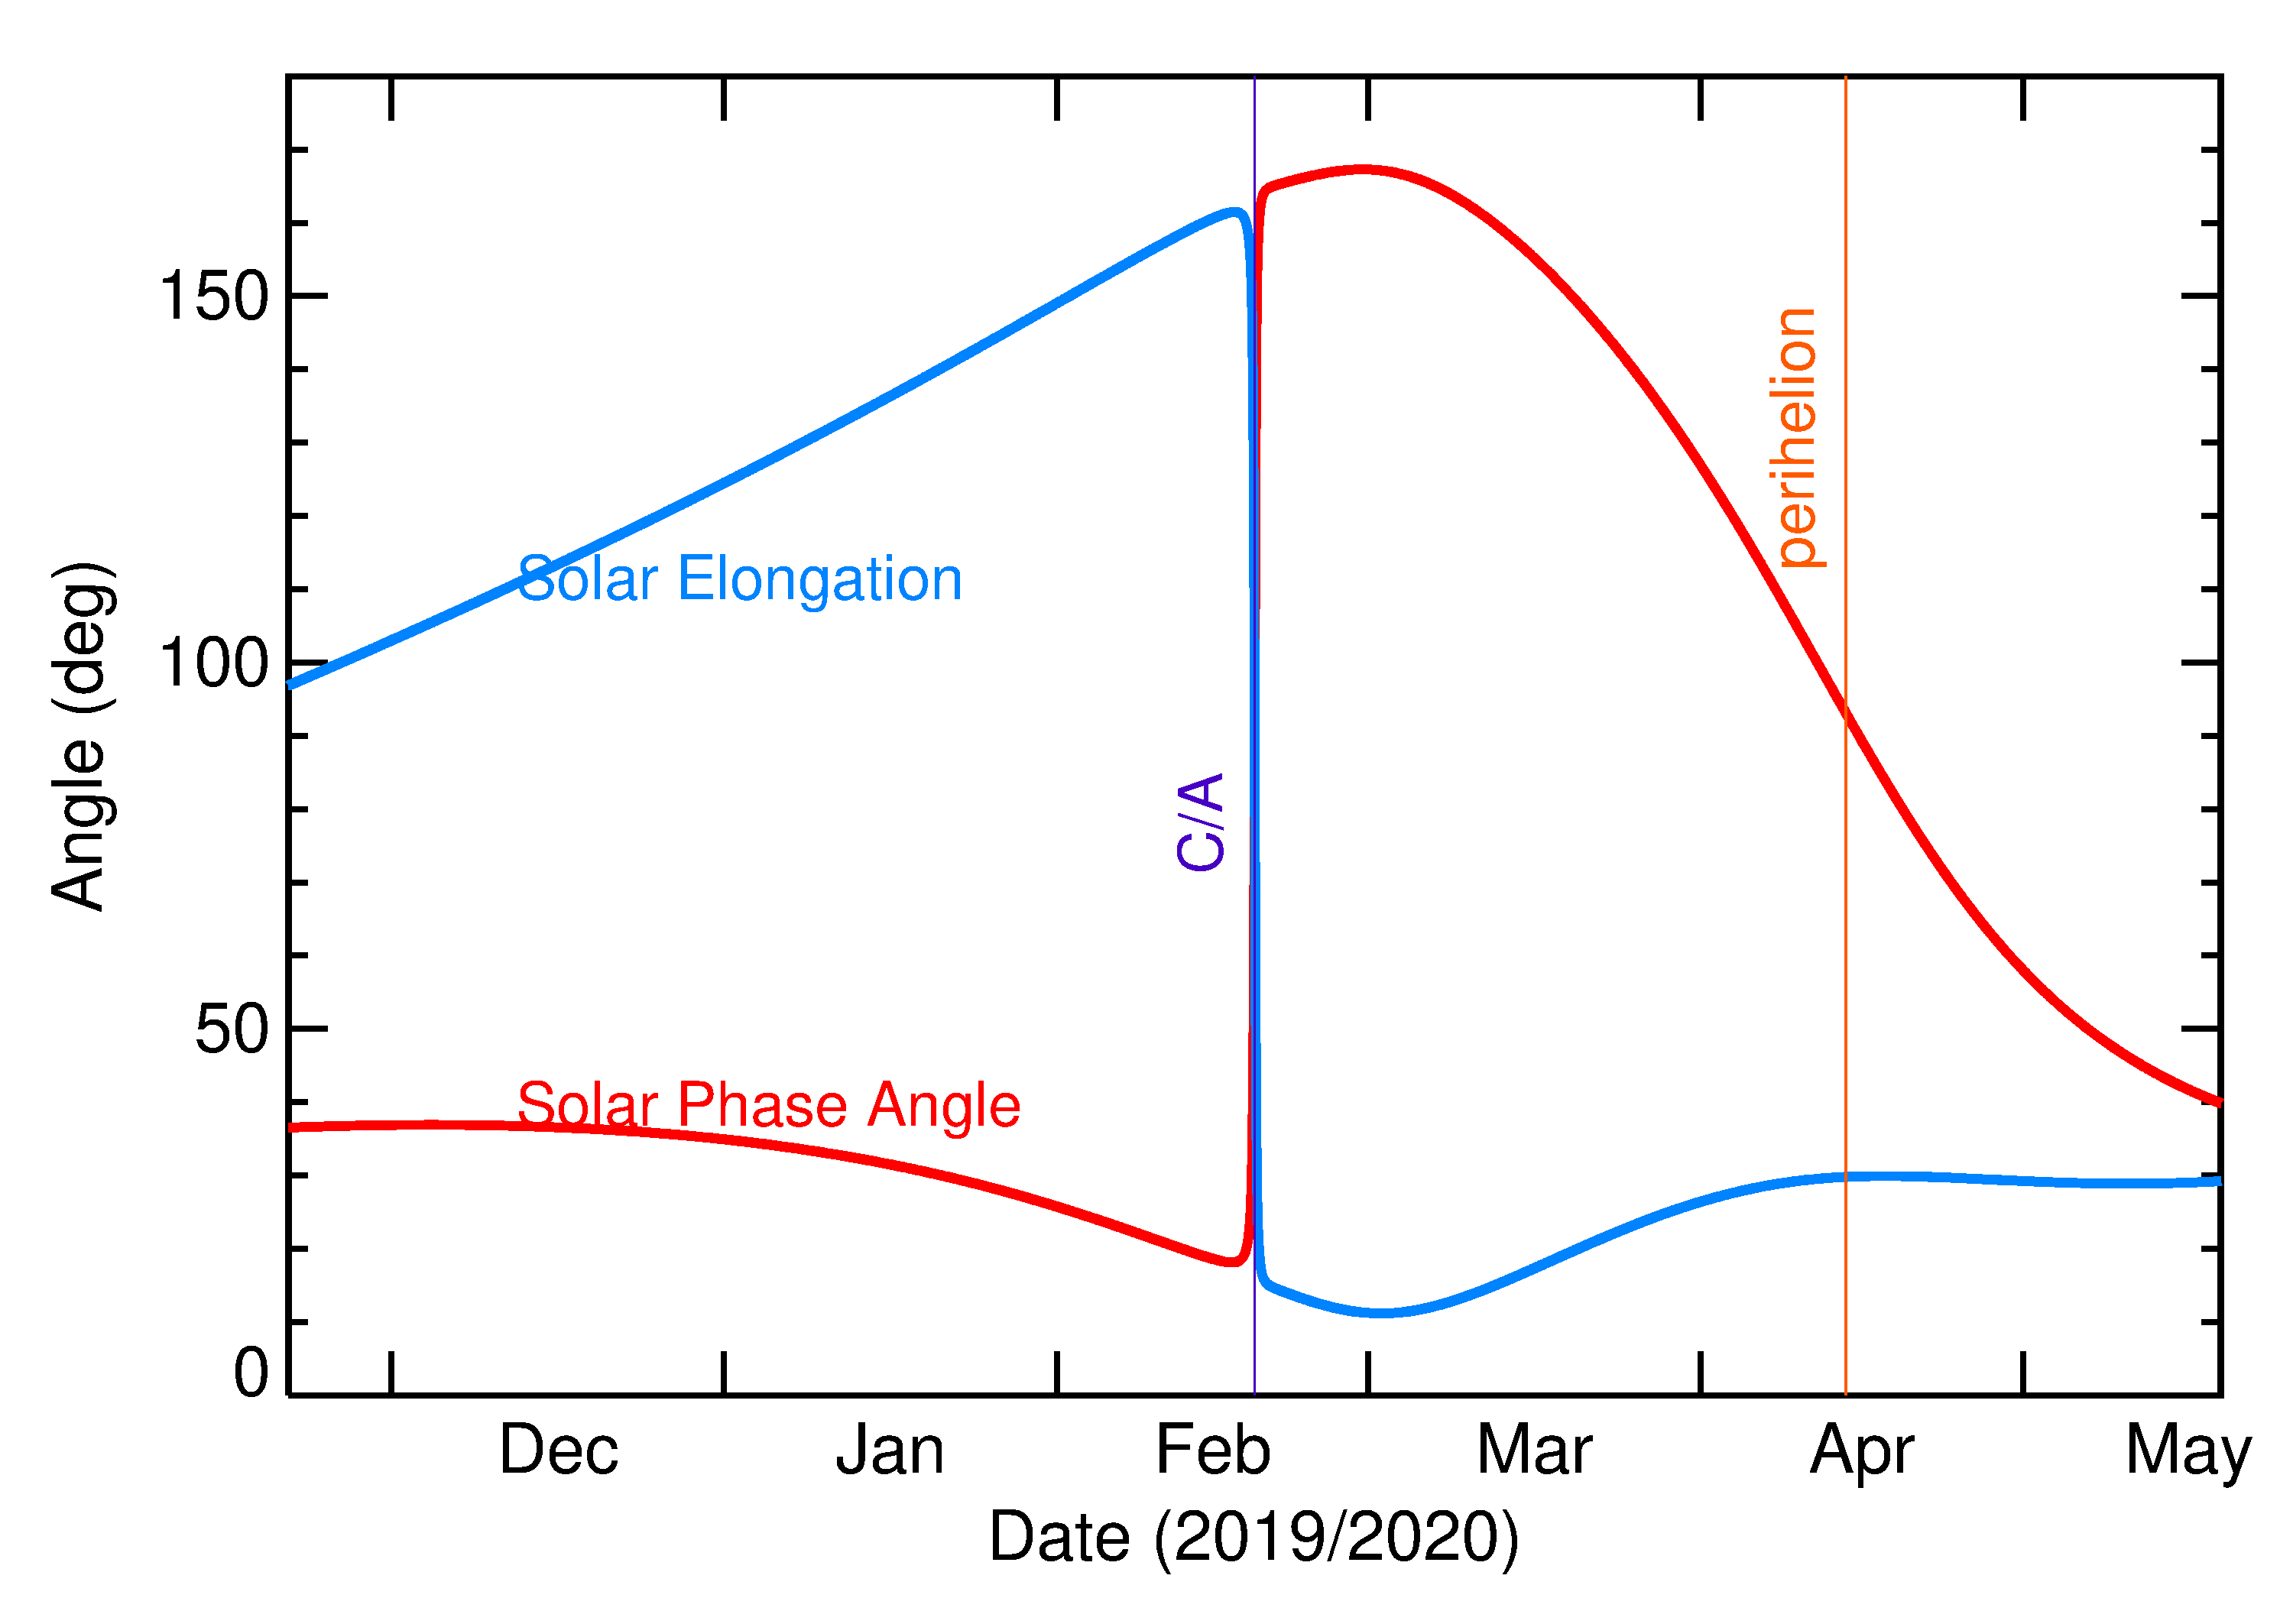 Solar Elongation and Solar Phase Angle of 2020 DA1 in the months around closest approach